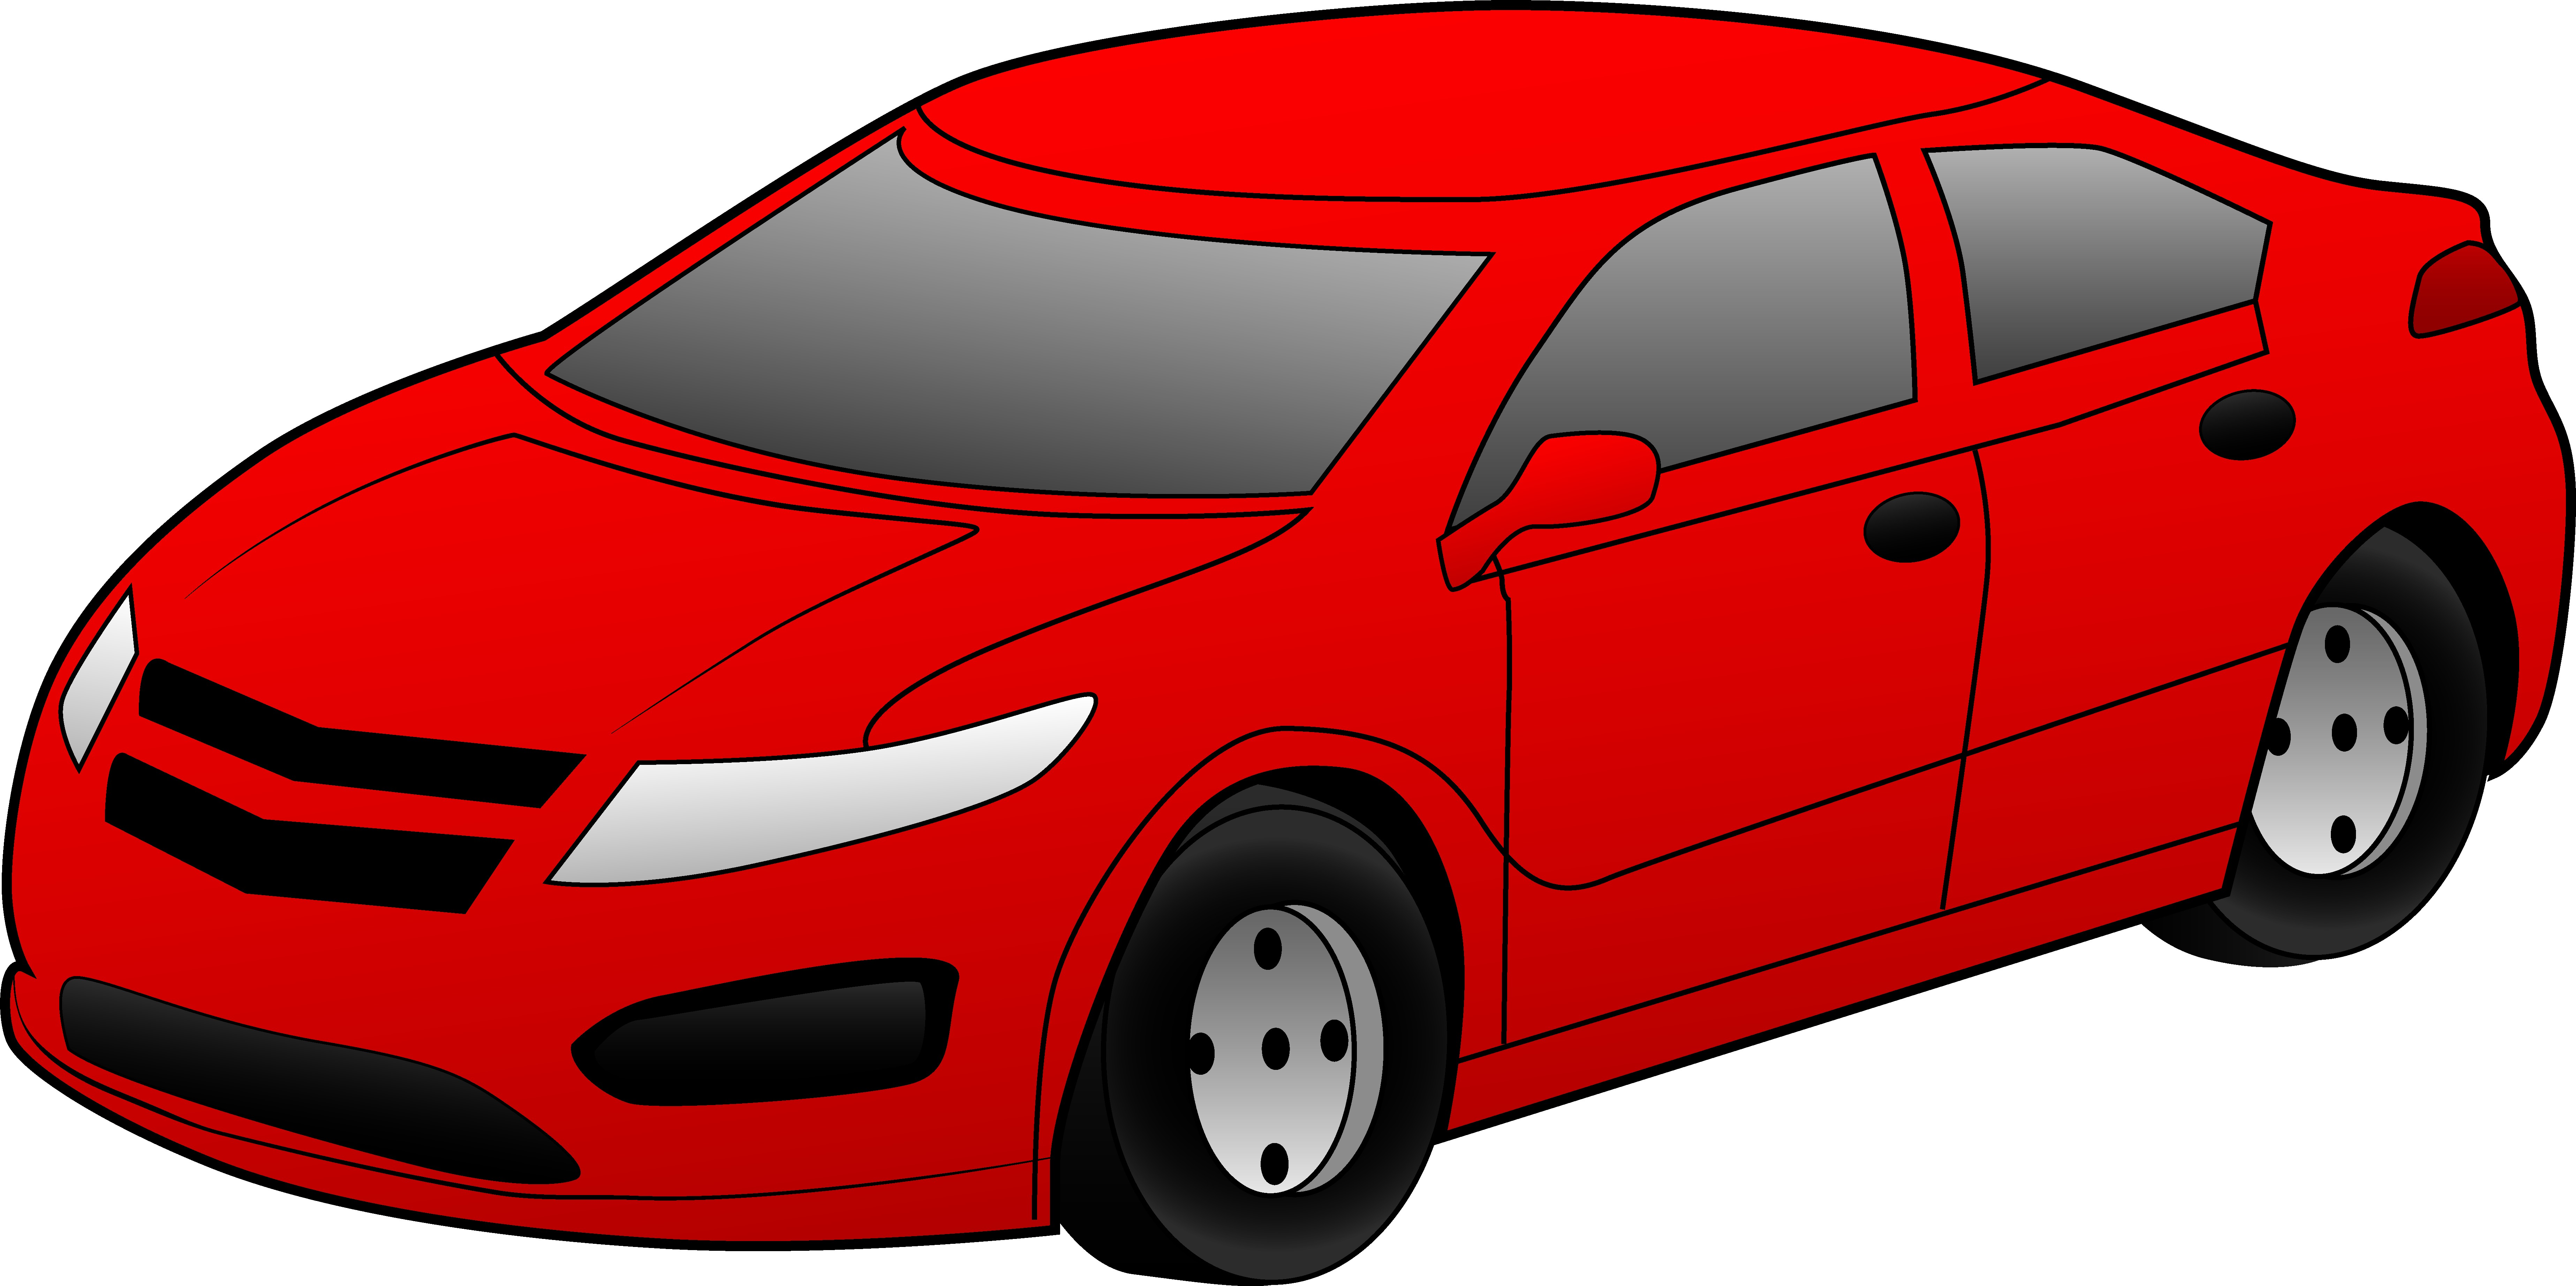 40553222 Stock Vector Racing Cars Jpg Ver 6 For Red Race Car Clipart.